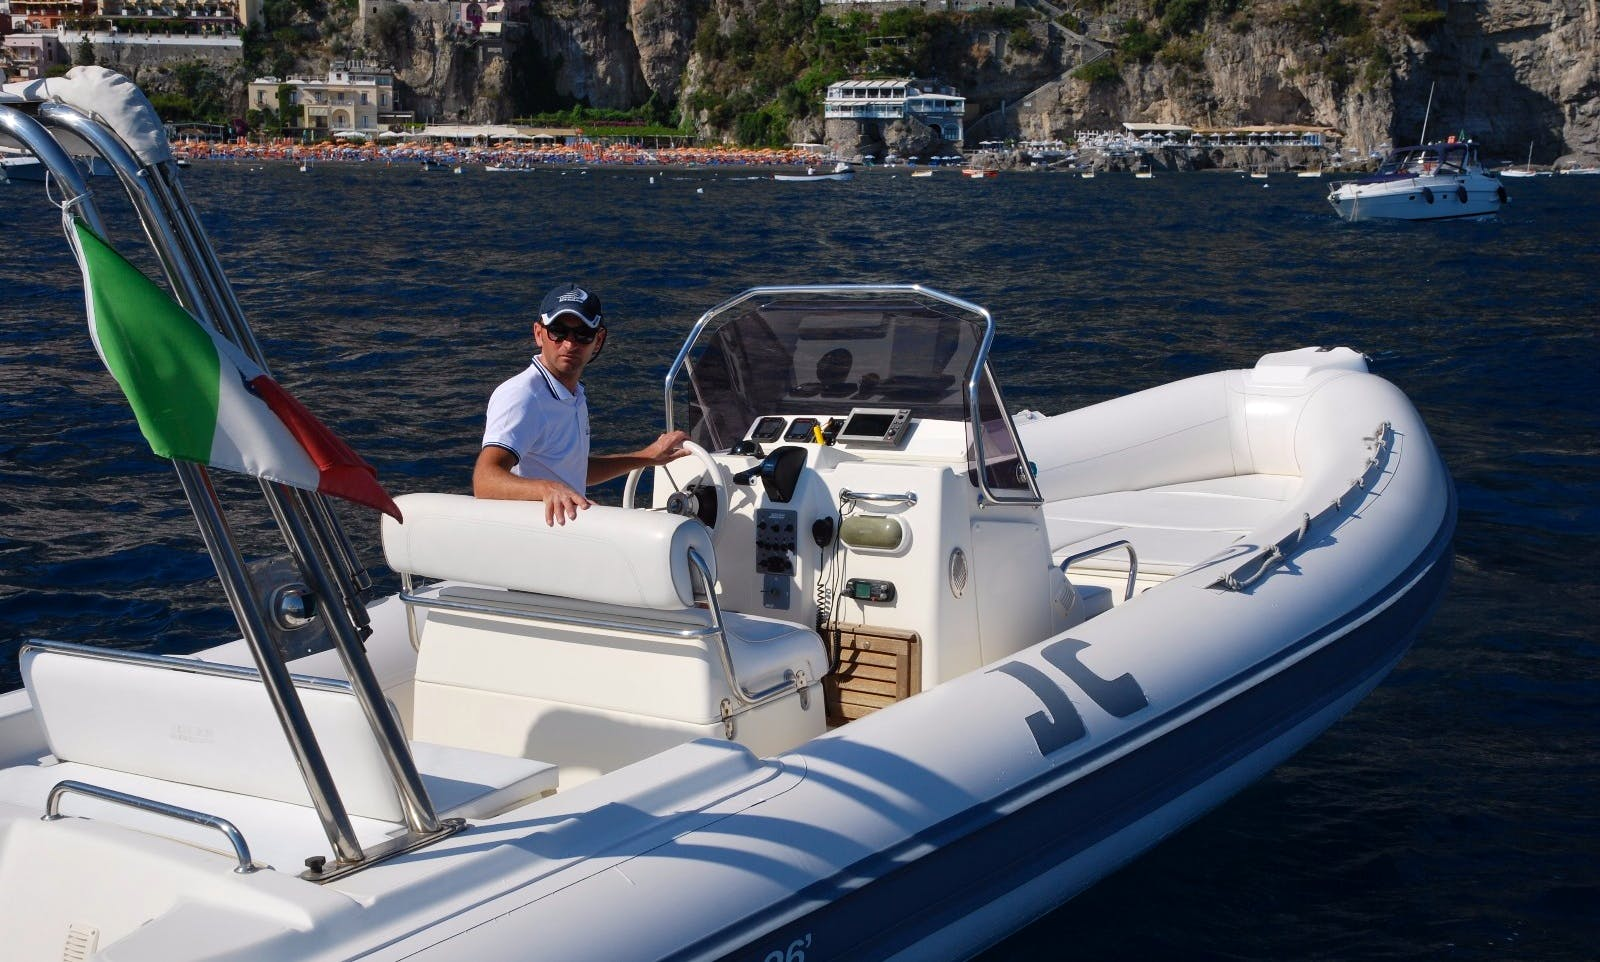 Dinghy rental in Positano for cruising the Amalfi Coast